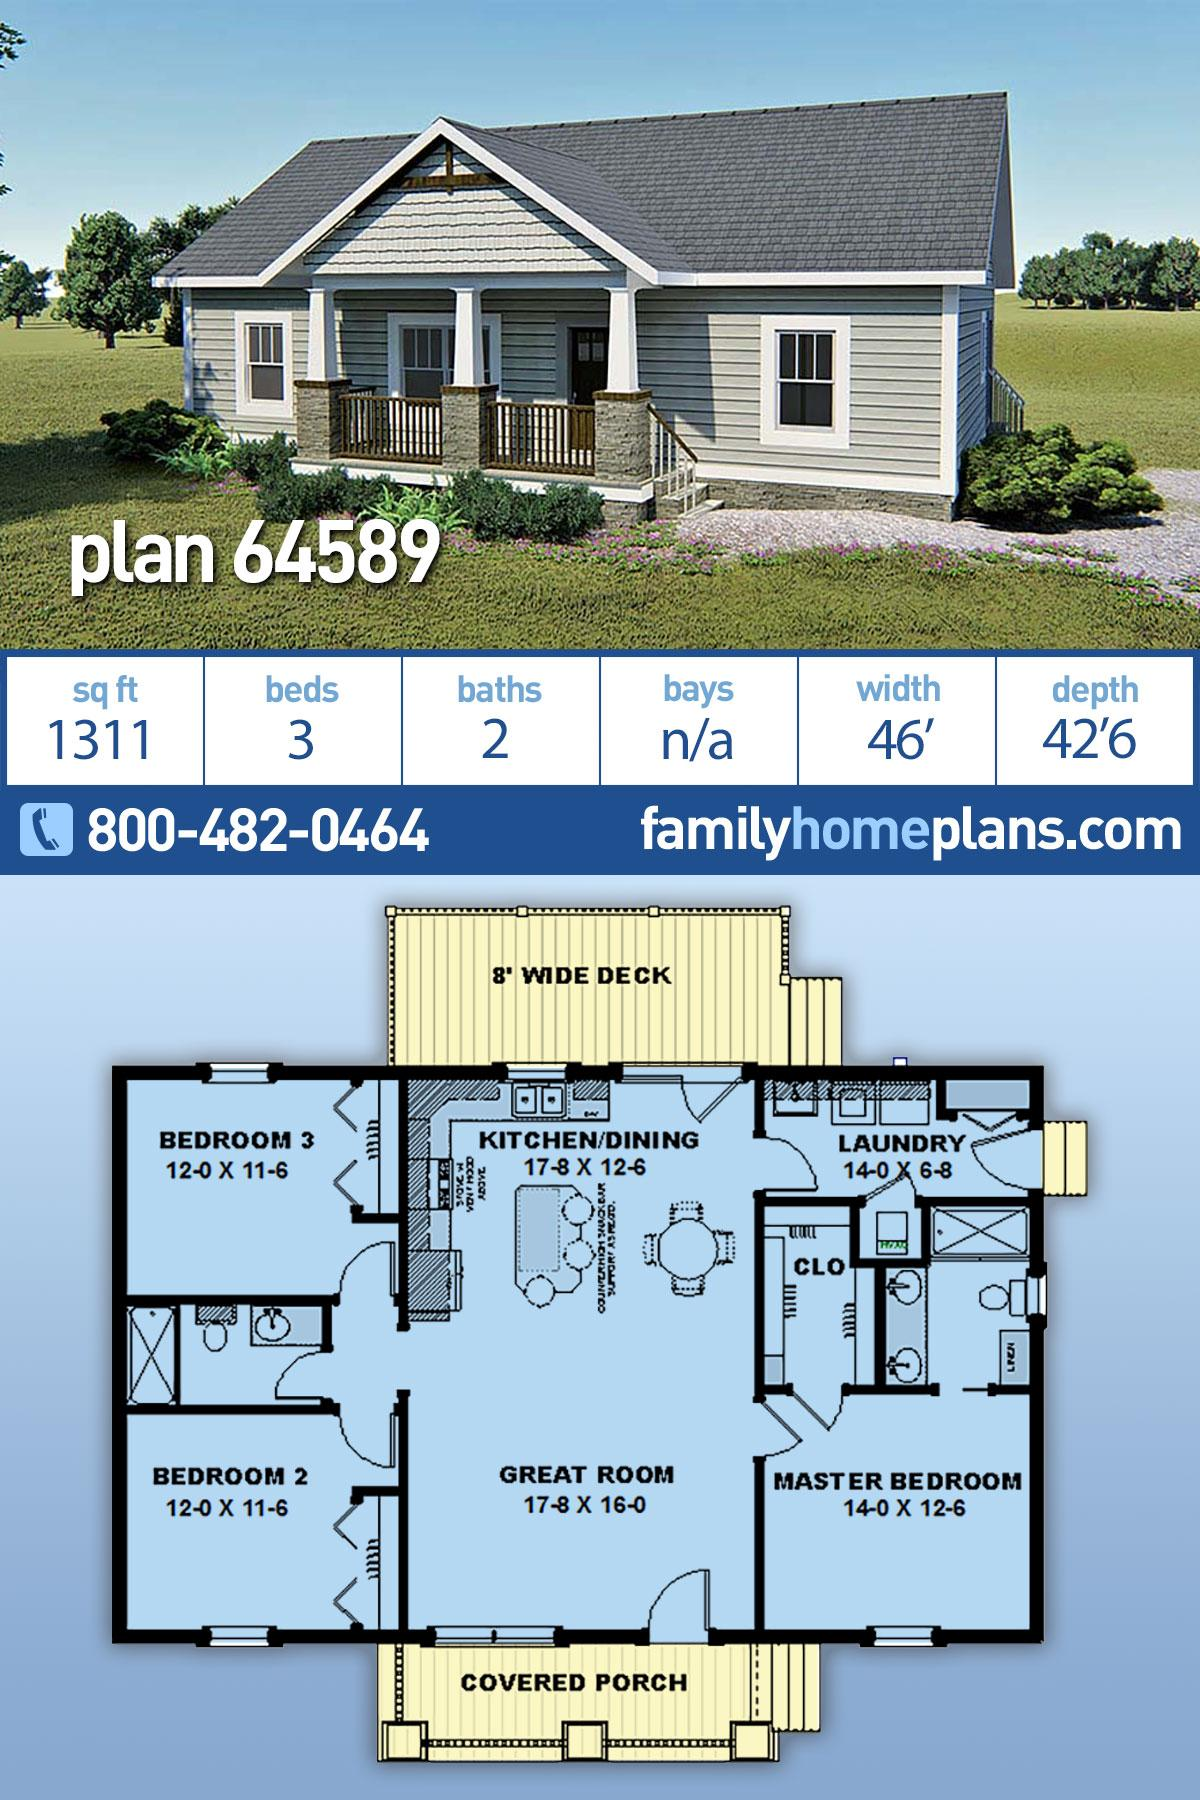 Bungalow, Country, Craftsman House Plan 64589 with 3 Beds, 2 Baths